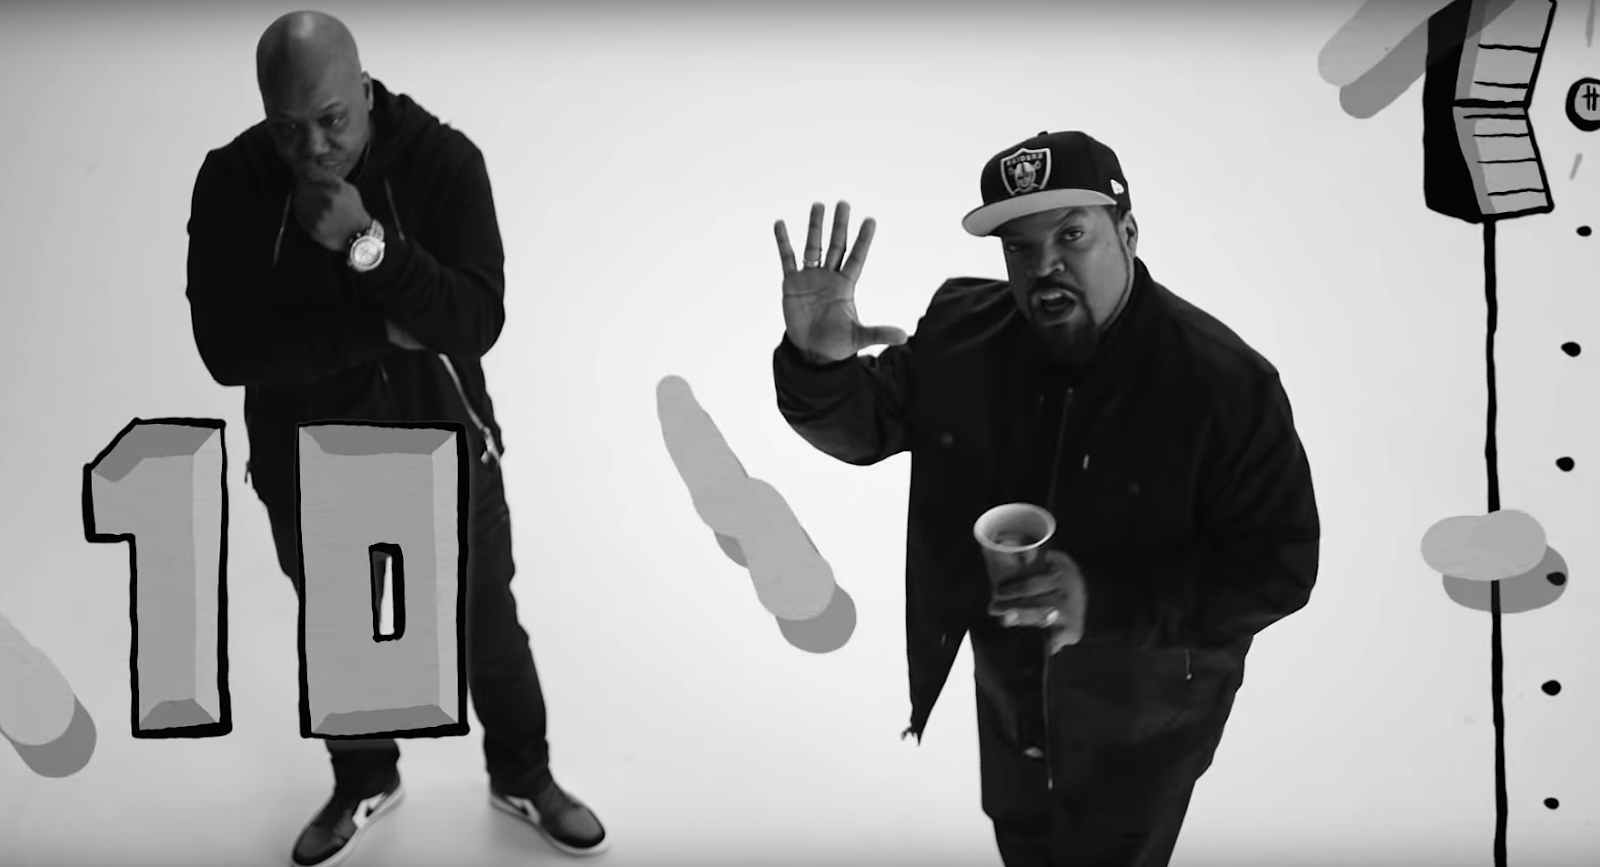 Ice Cube - Ain't Got No Haters ft. Too Short | Musikvideo des Tages